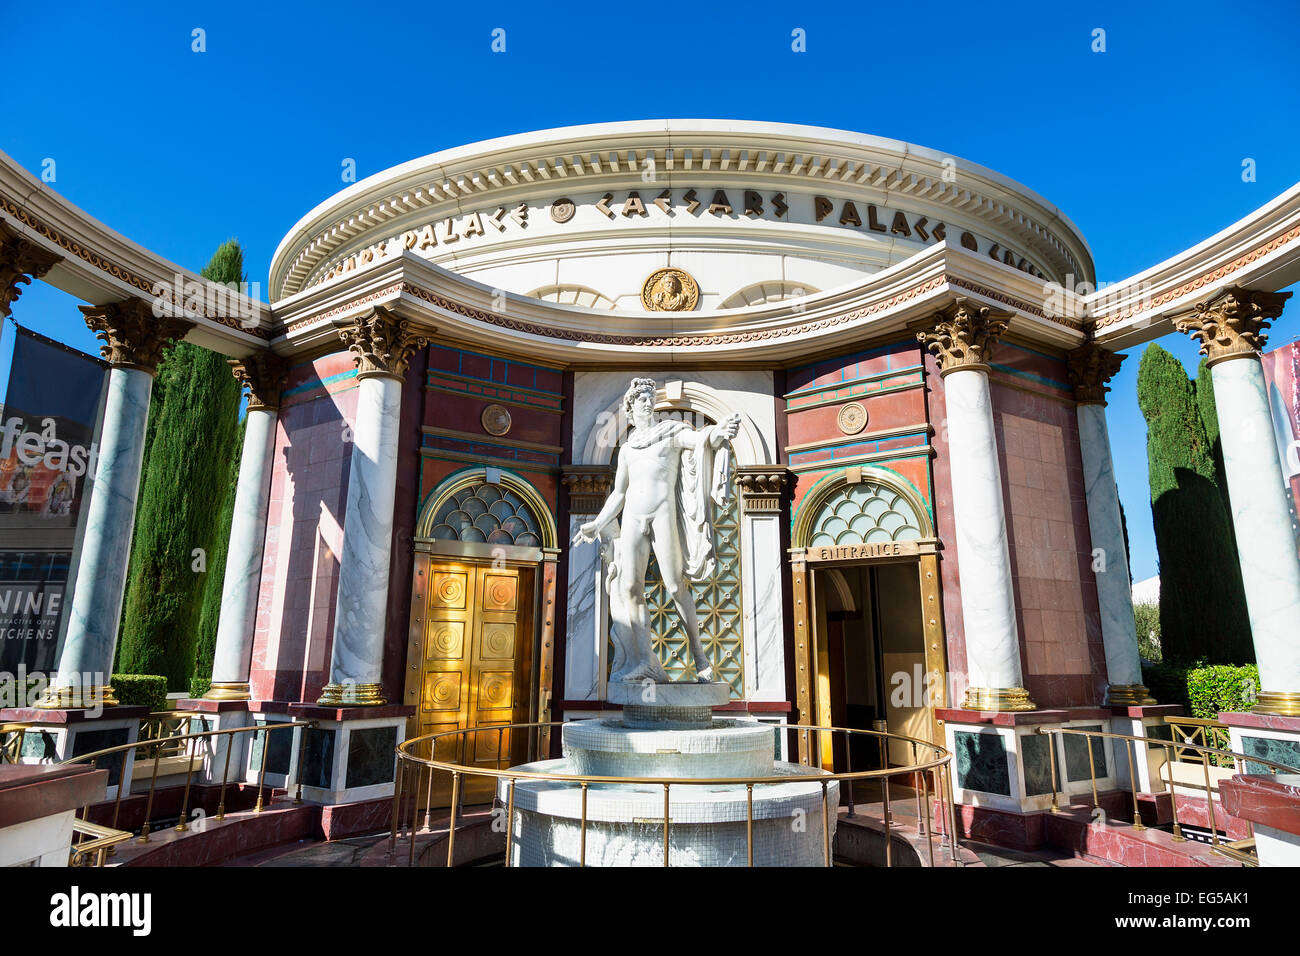 the caesars a life of royalty Caesars casino resorts operate under the caesars, bally's, flamingo, grand casinos, hilton and paris brand names the company's corporate headquarters are in las vegas on june 19, 2005, harrah's closed its $9 billion buyout of rival caesars entertainment.